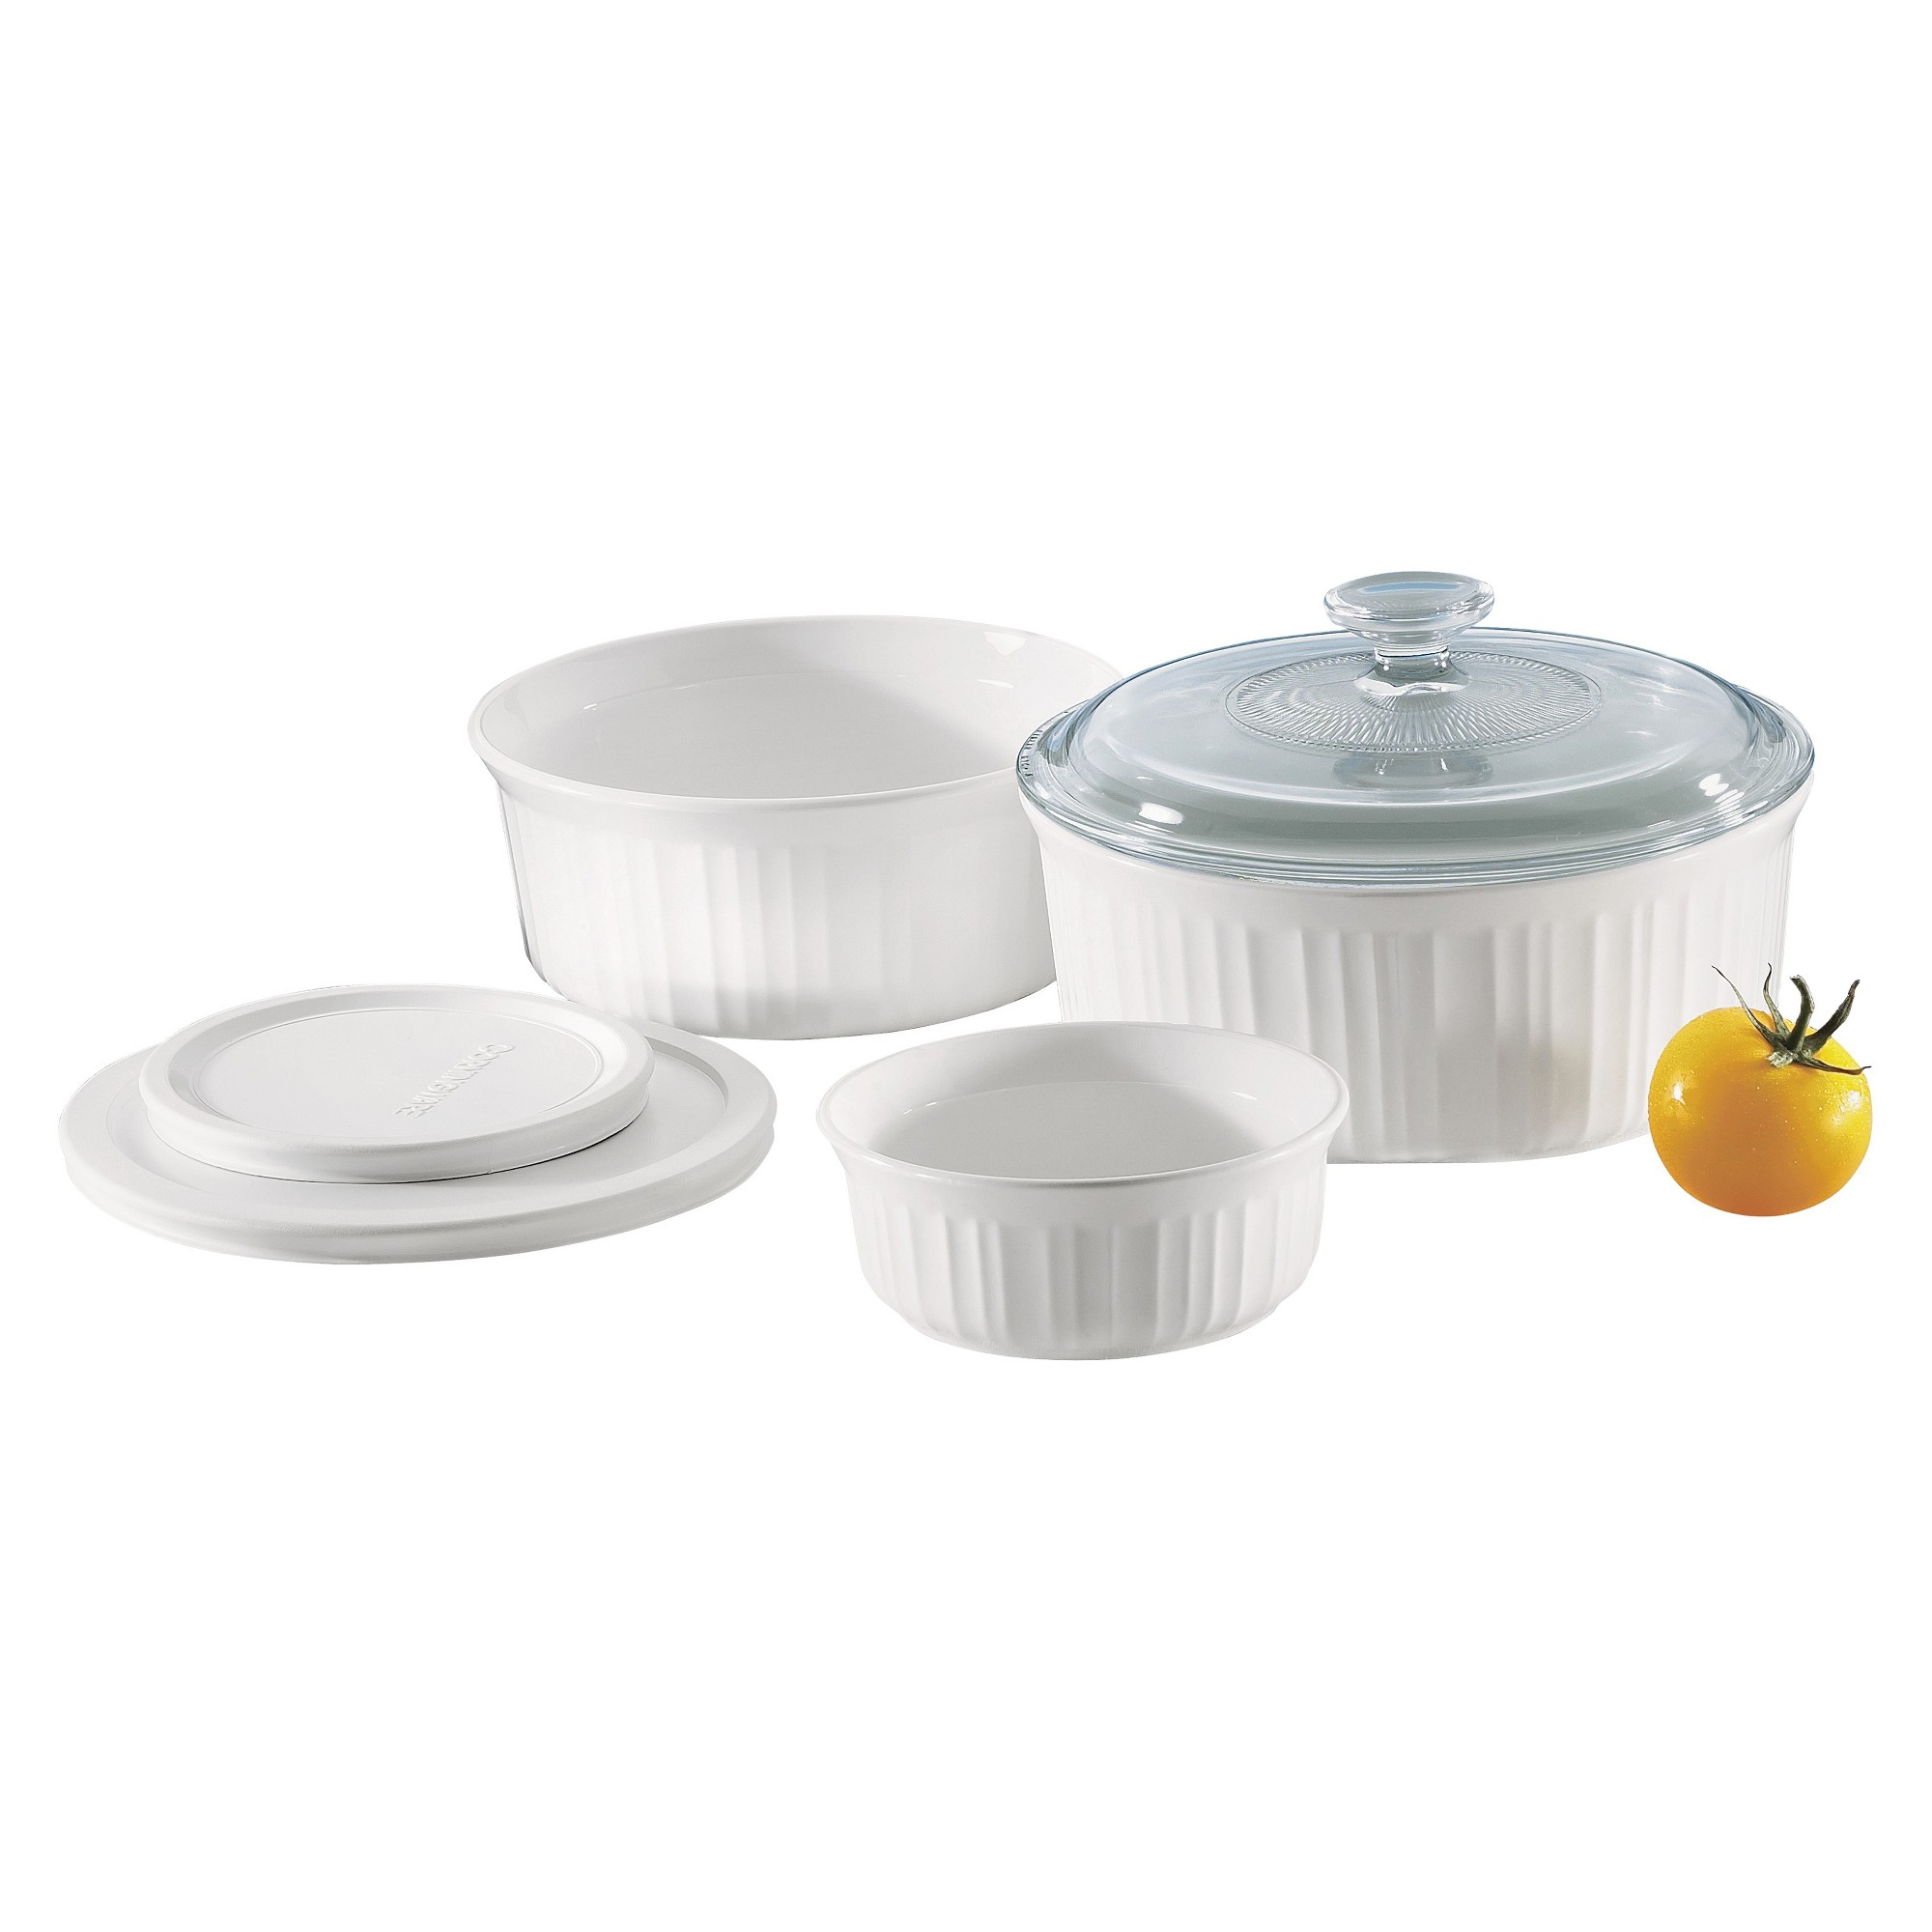 Corningware 6 Piece Bakeware Set White Ceramic Bakeware Set